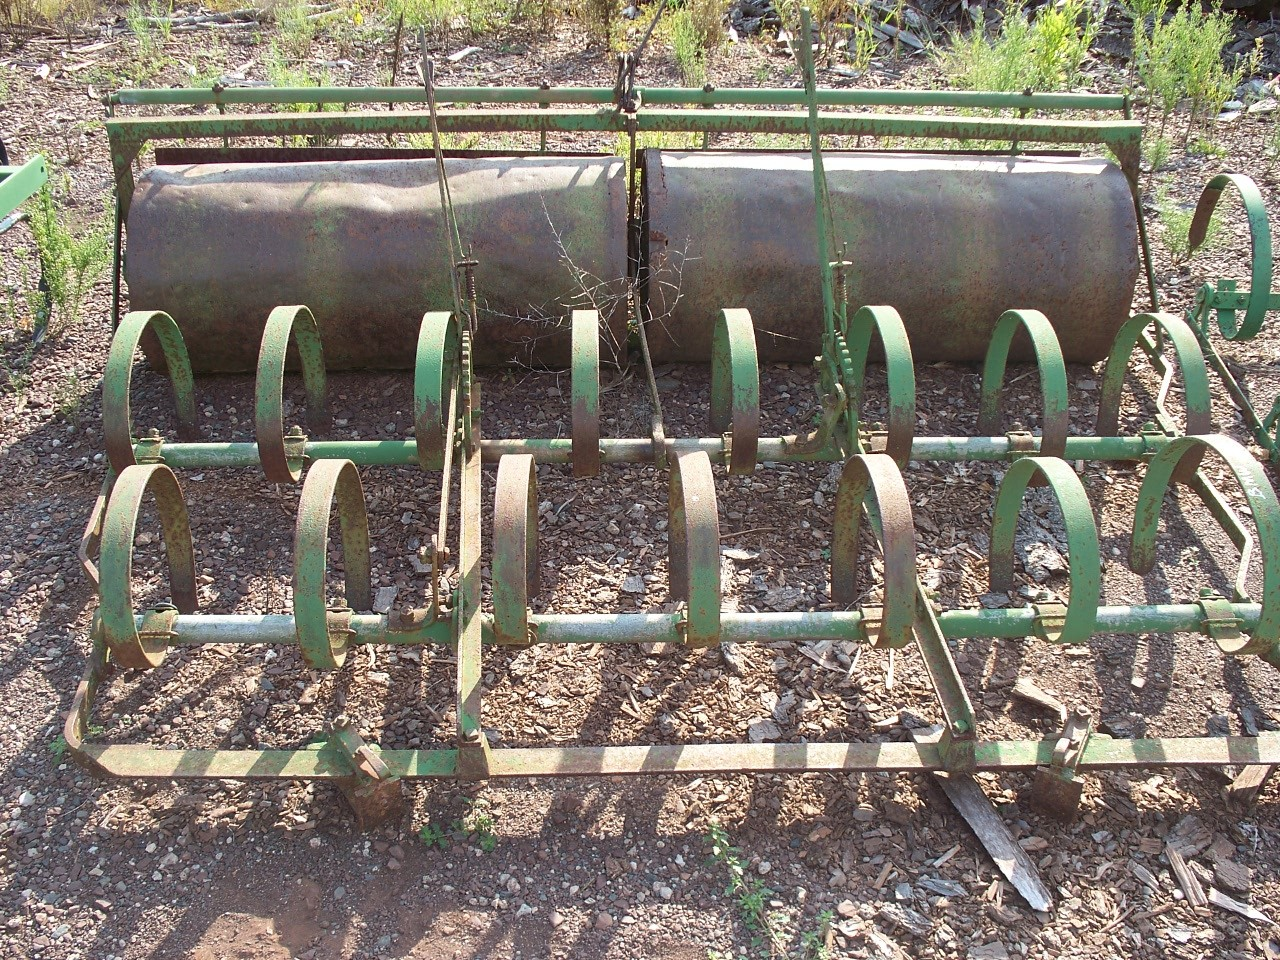 USED 7' Roller / Spring Tooth Harrow - 1 IN STOCK - $275